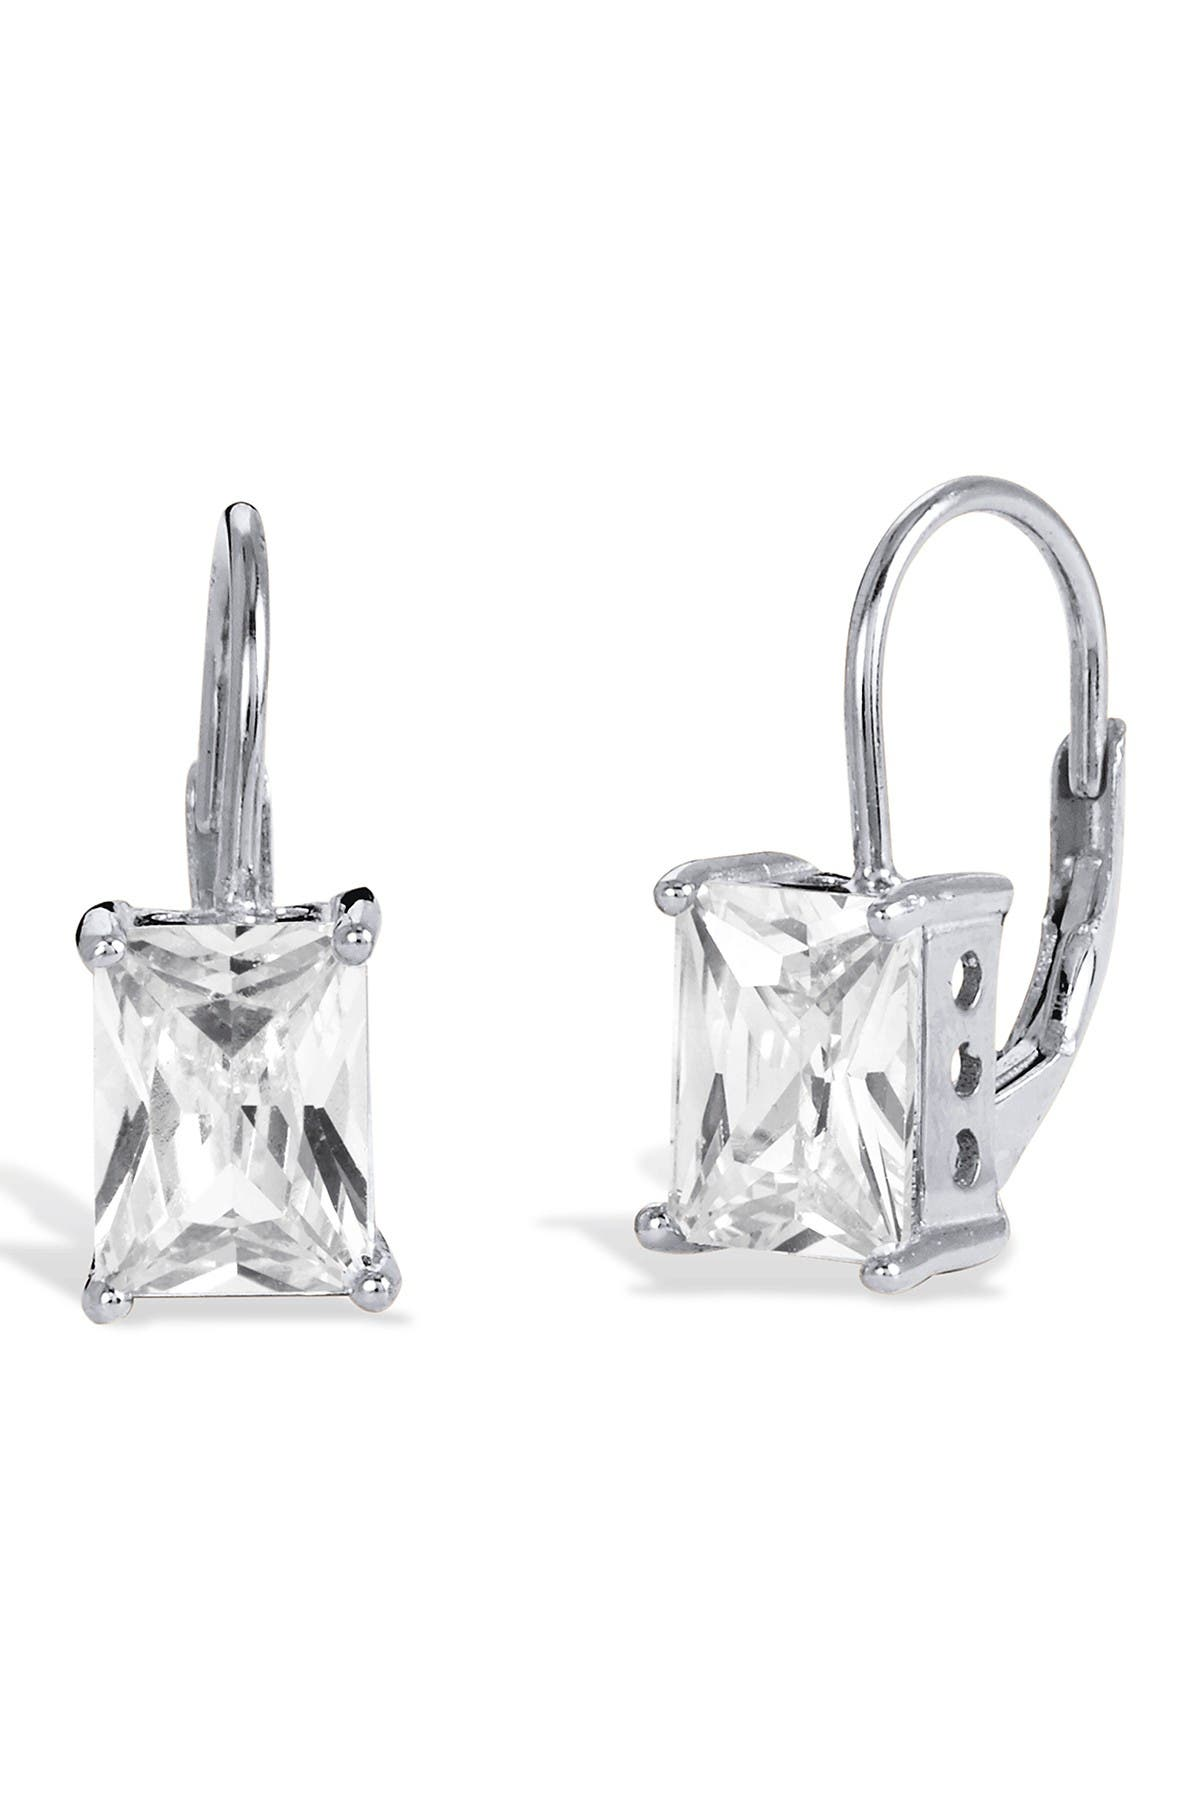 Image of Savvy Cie Sterling Silver Cubic Zirconia Earrings